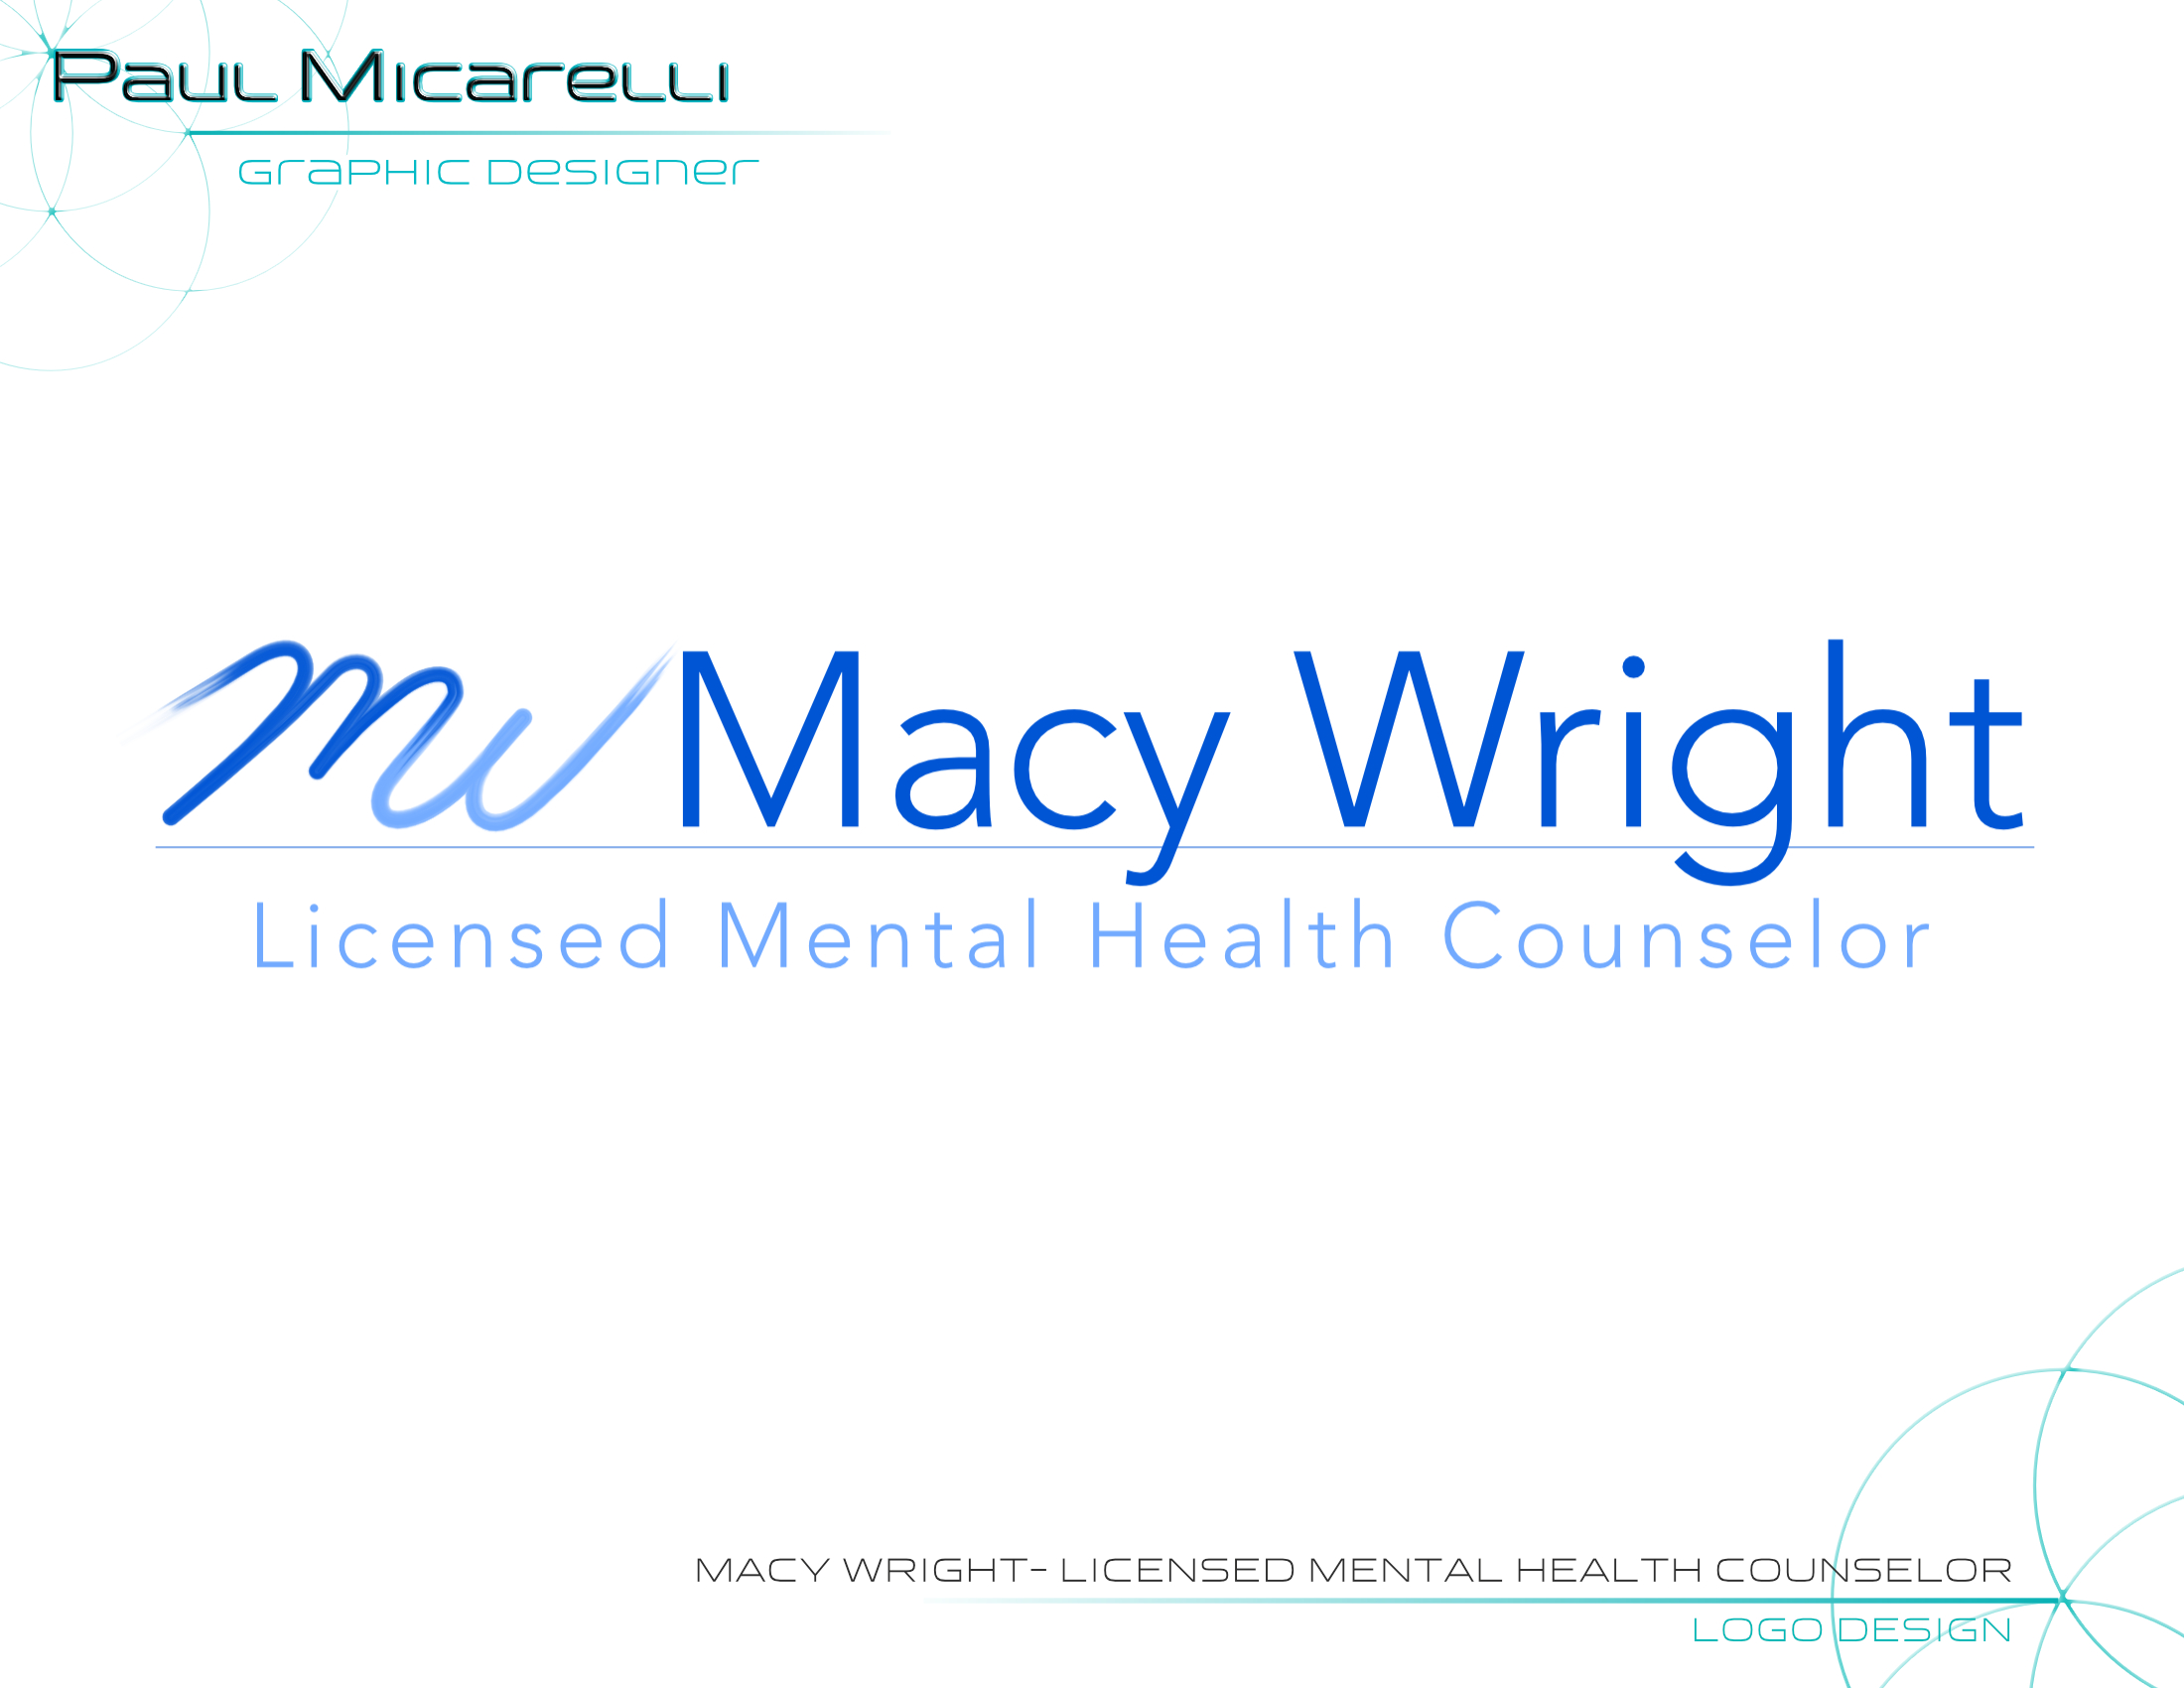 Paul-Micarelli-Macy Wright Logo